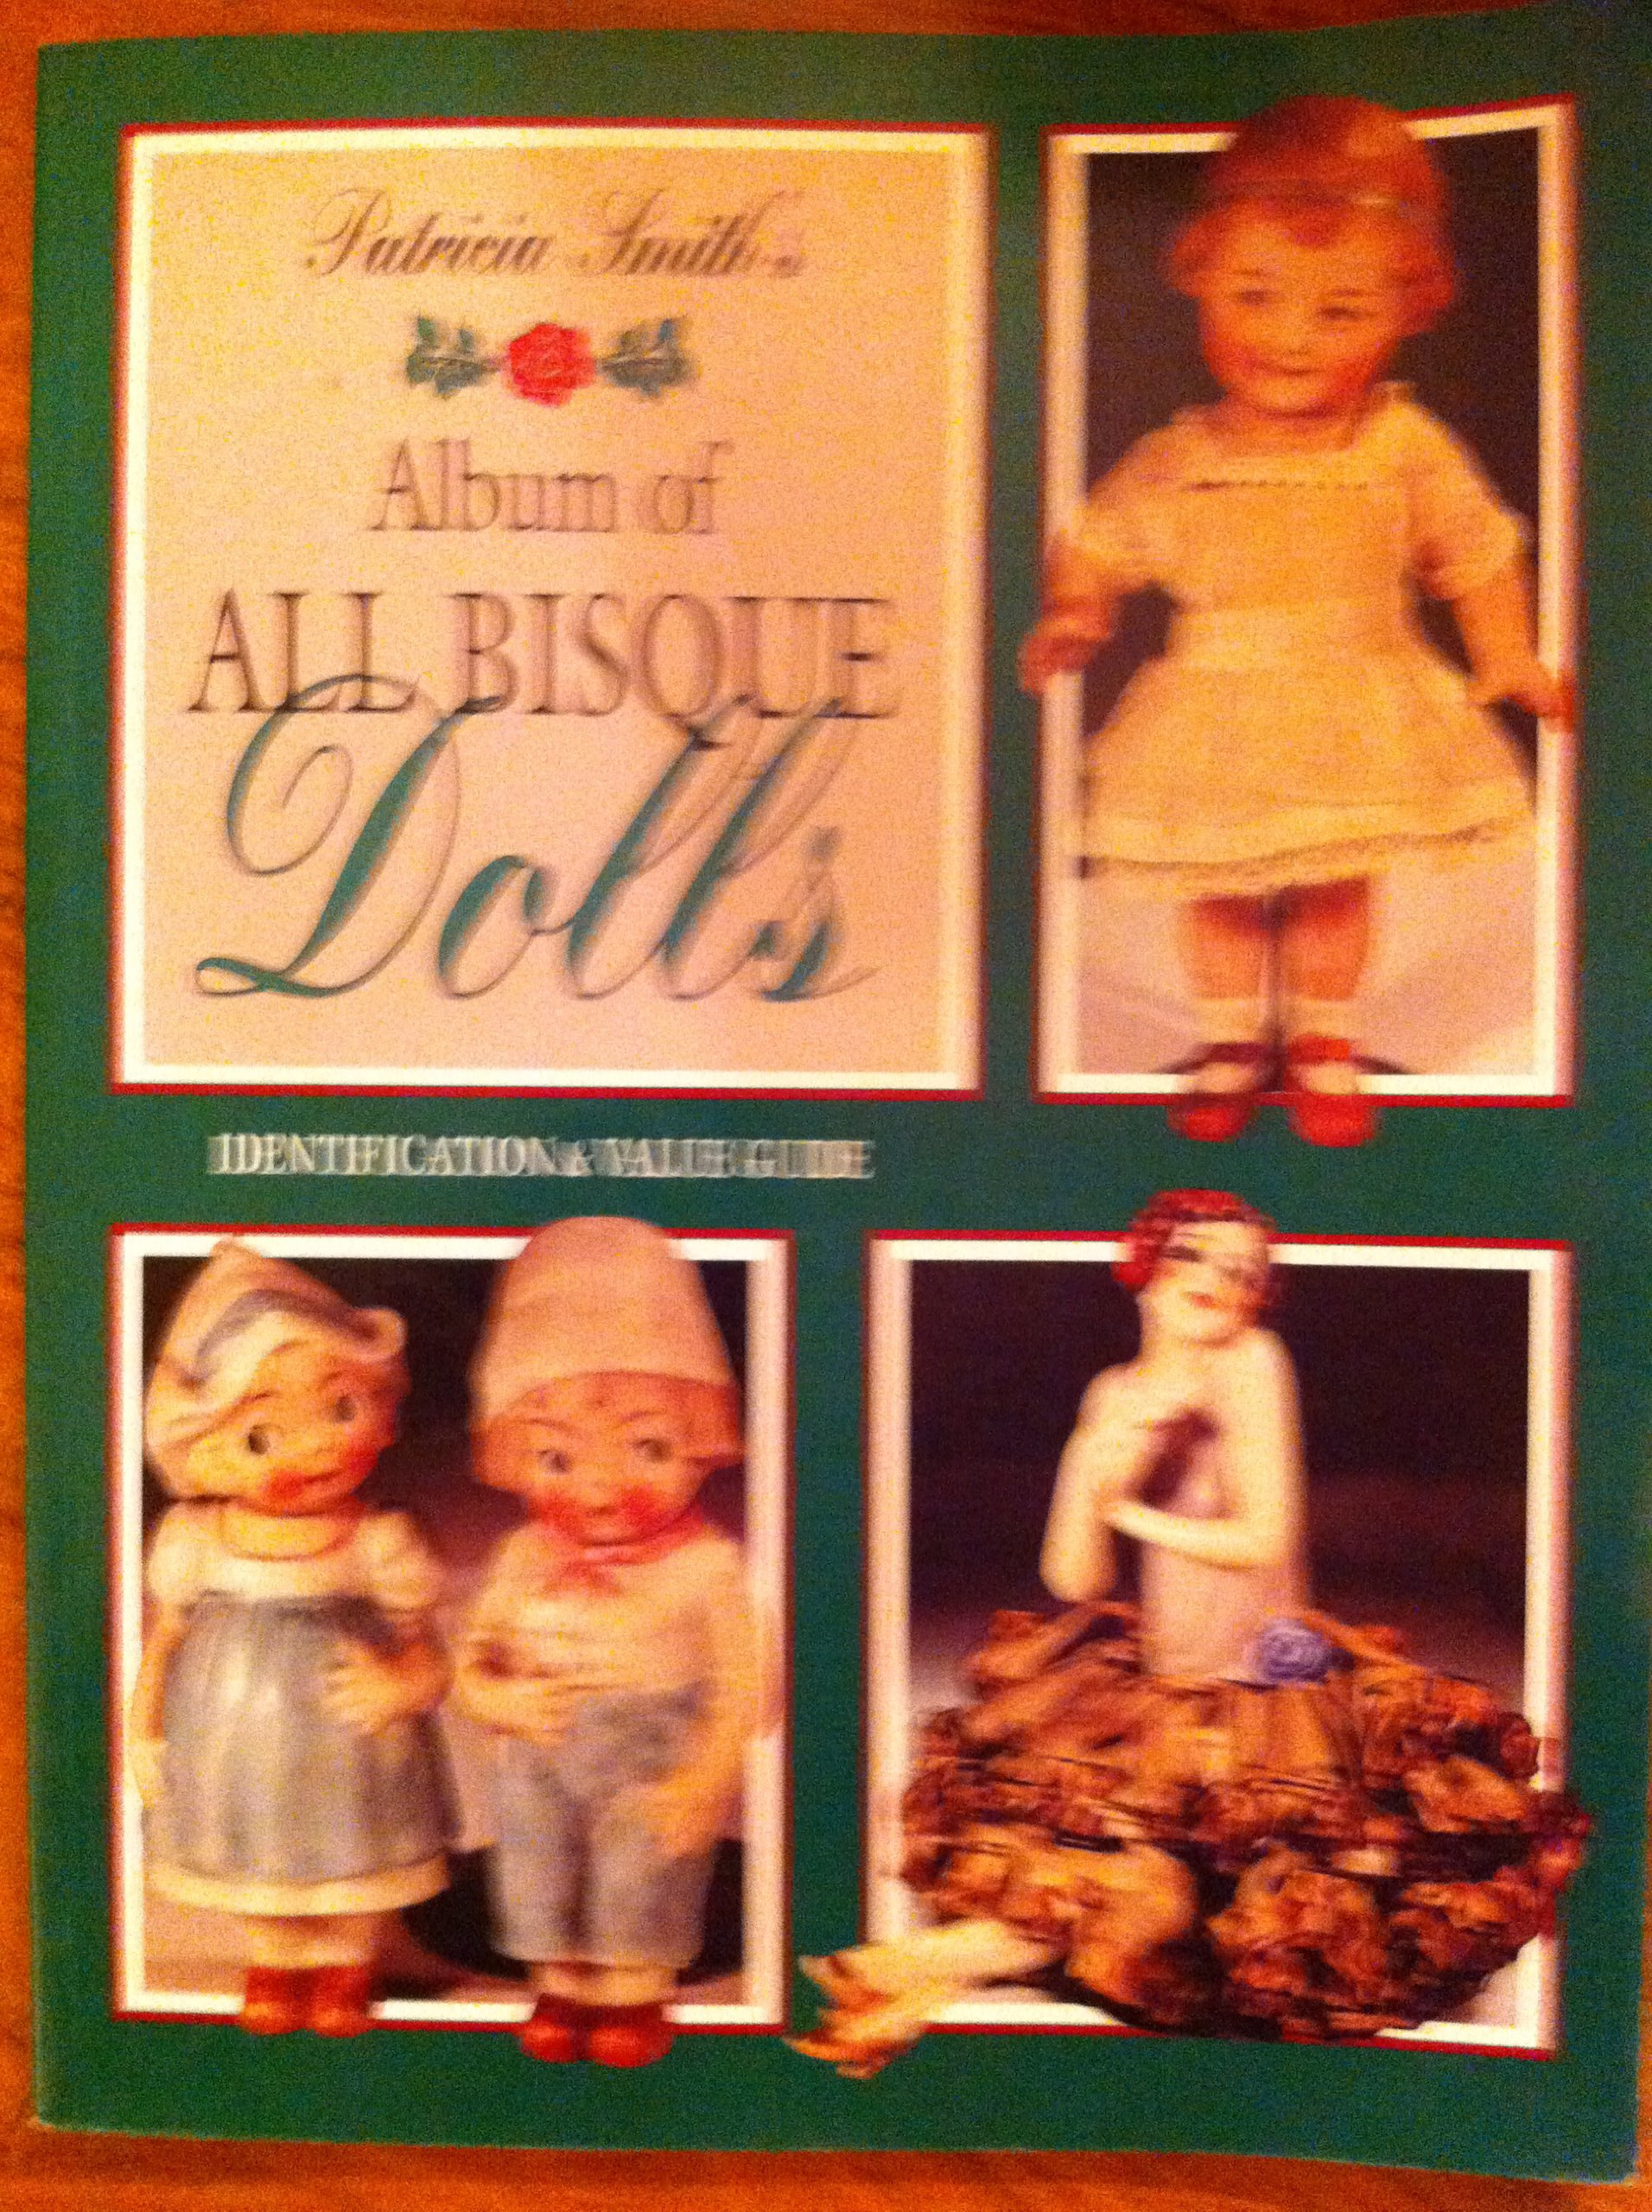 Pat Smith's Album of All Bisque Dolls: Identification and Value Guide